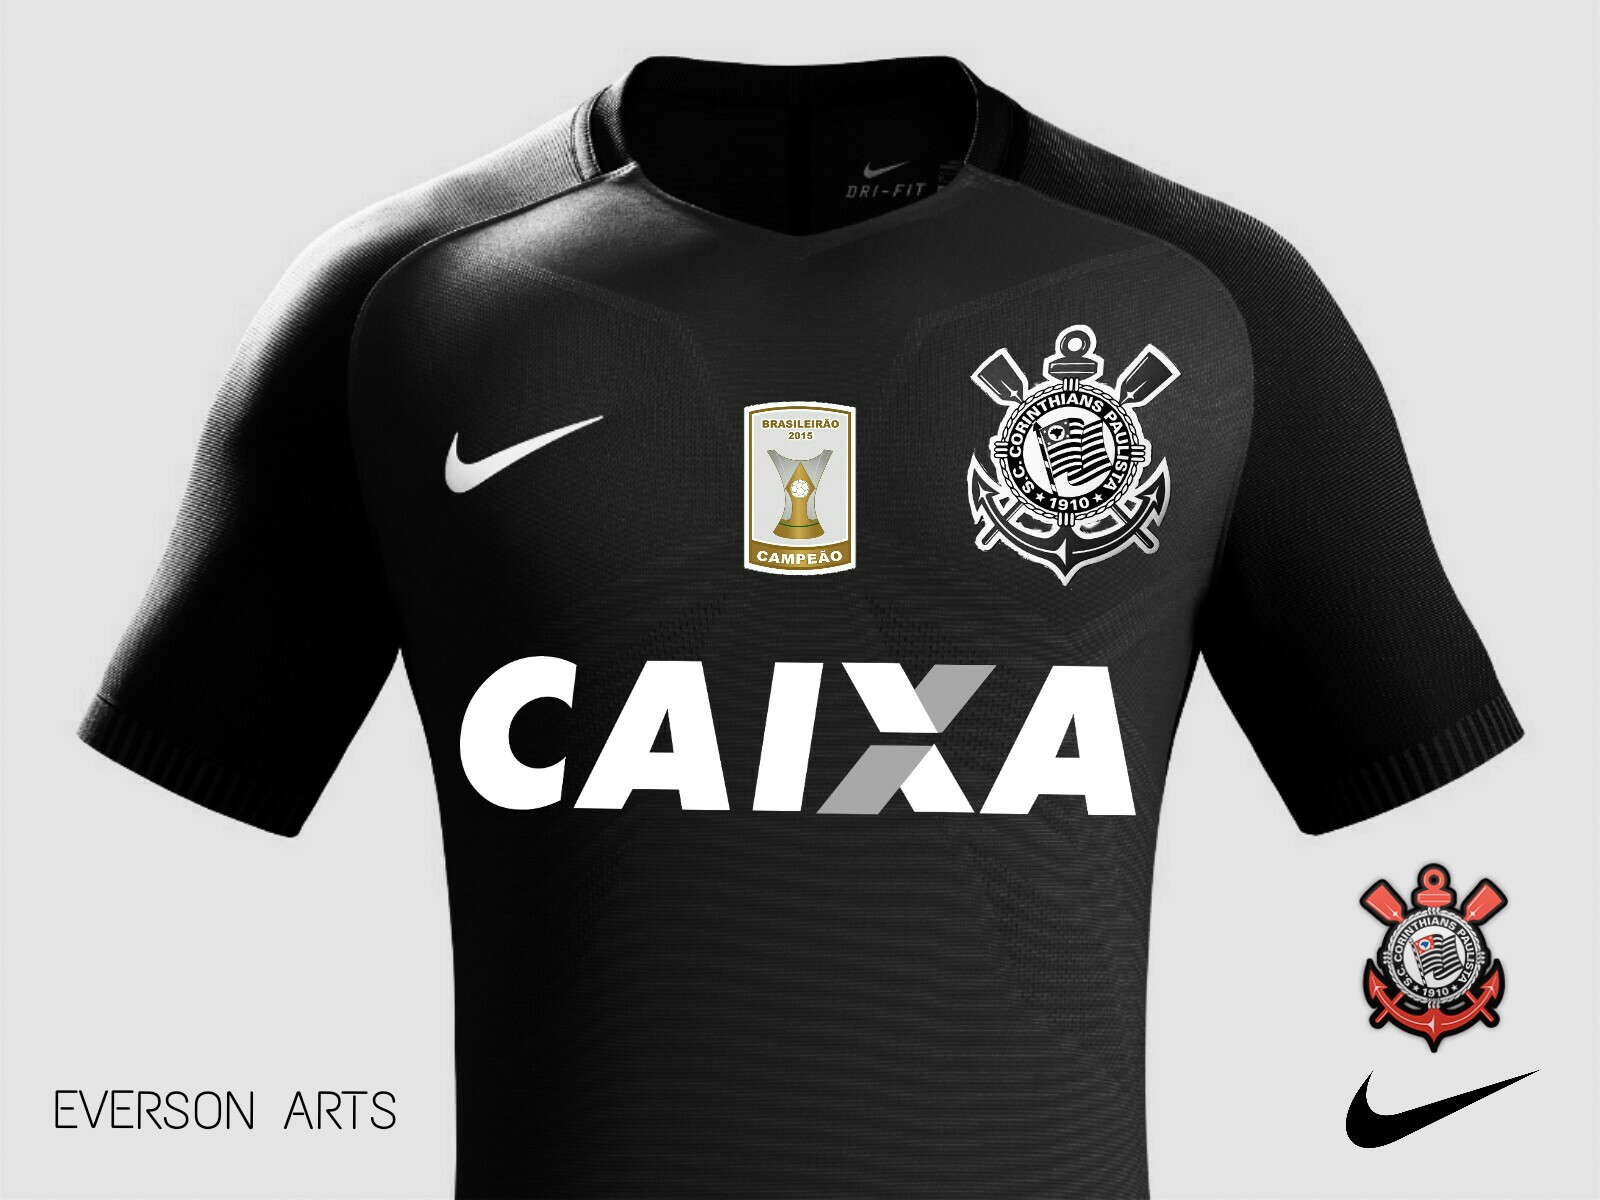 Uniforme do timão